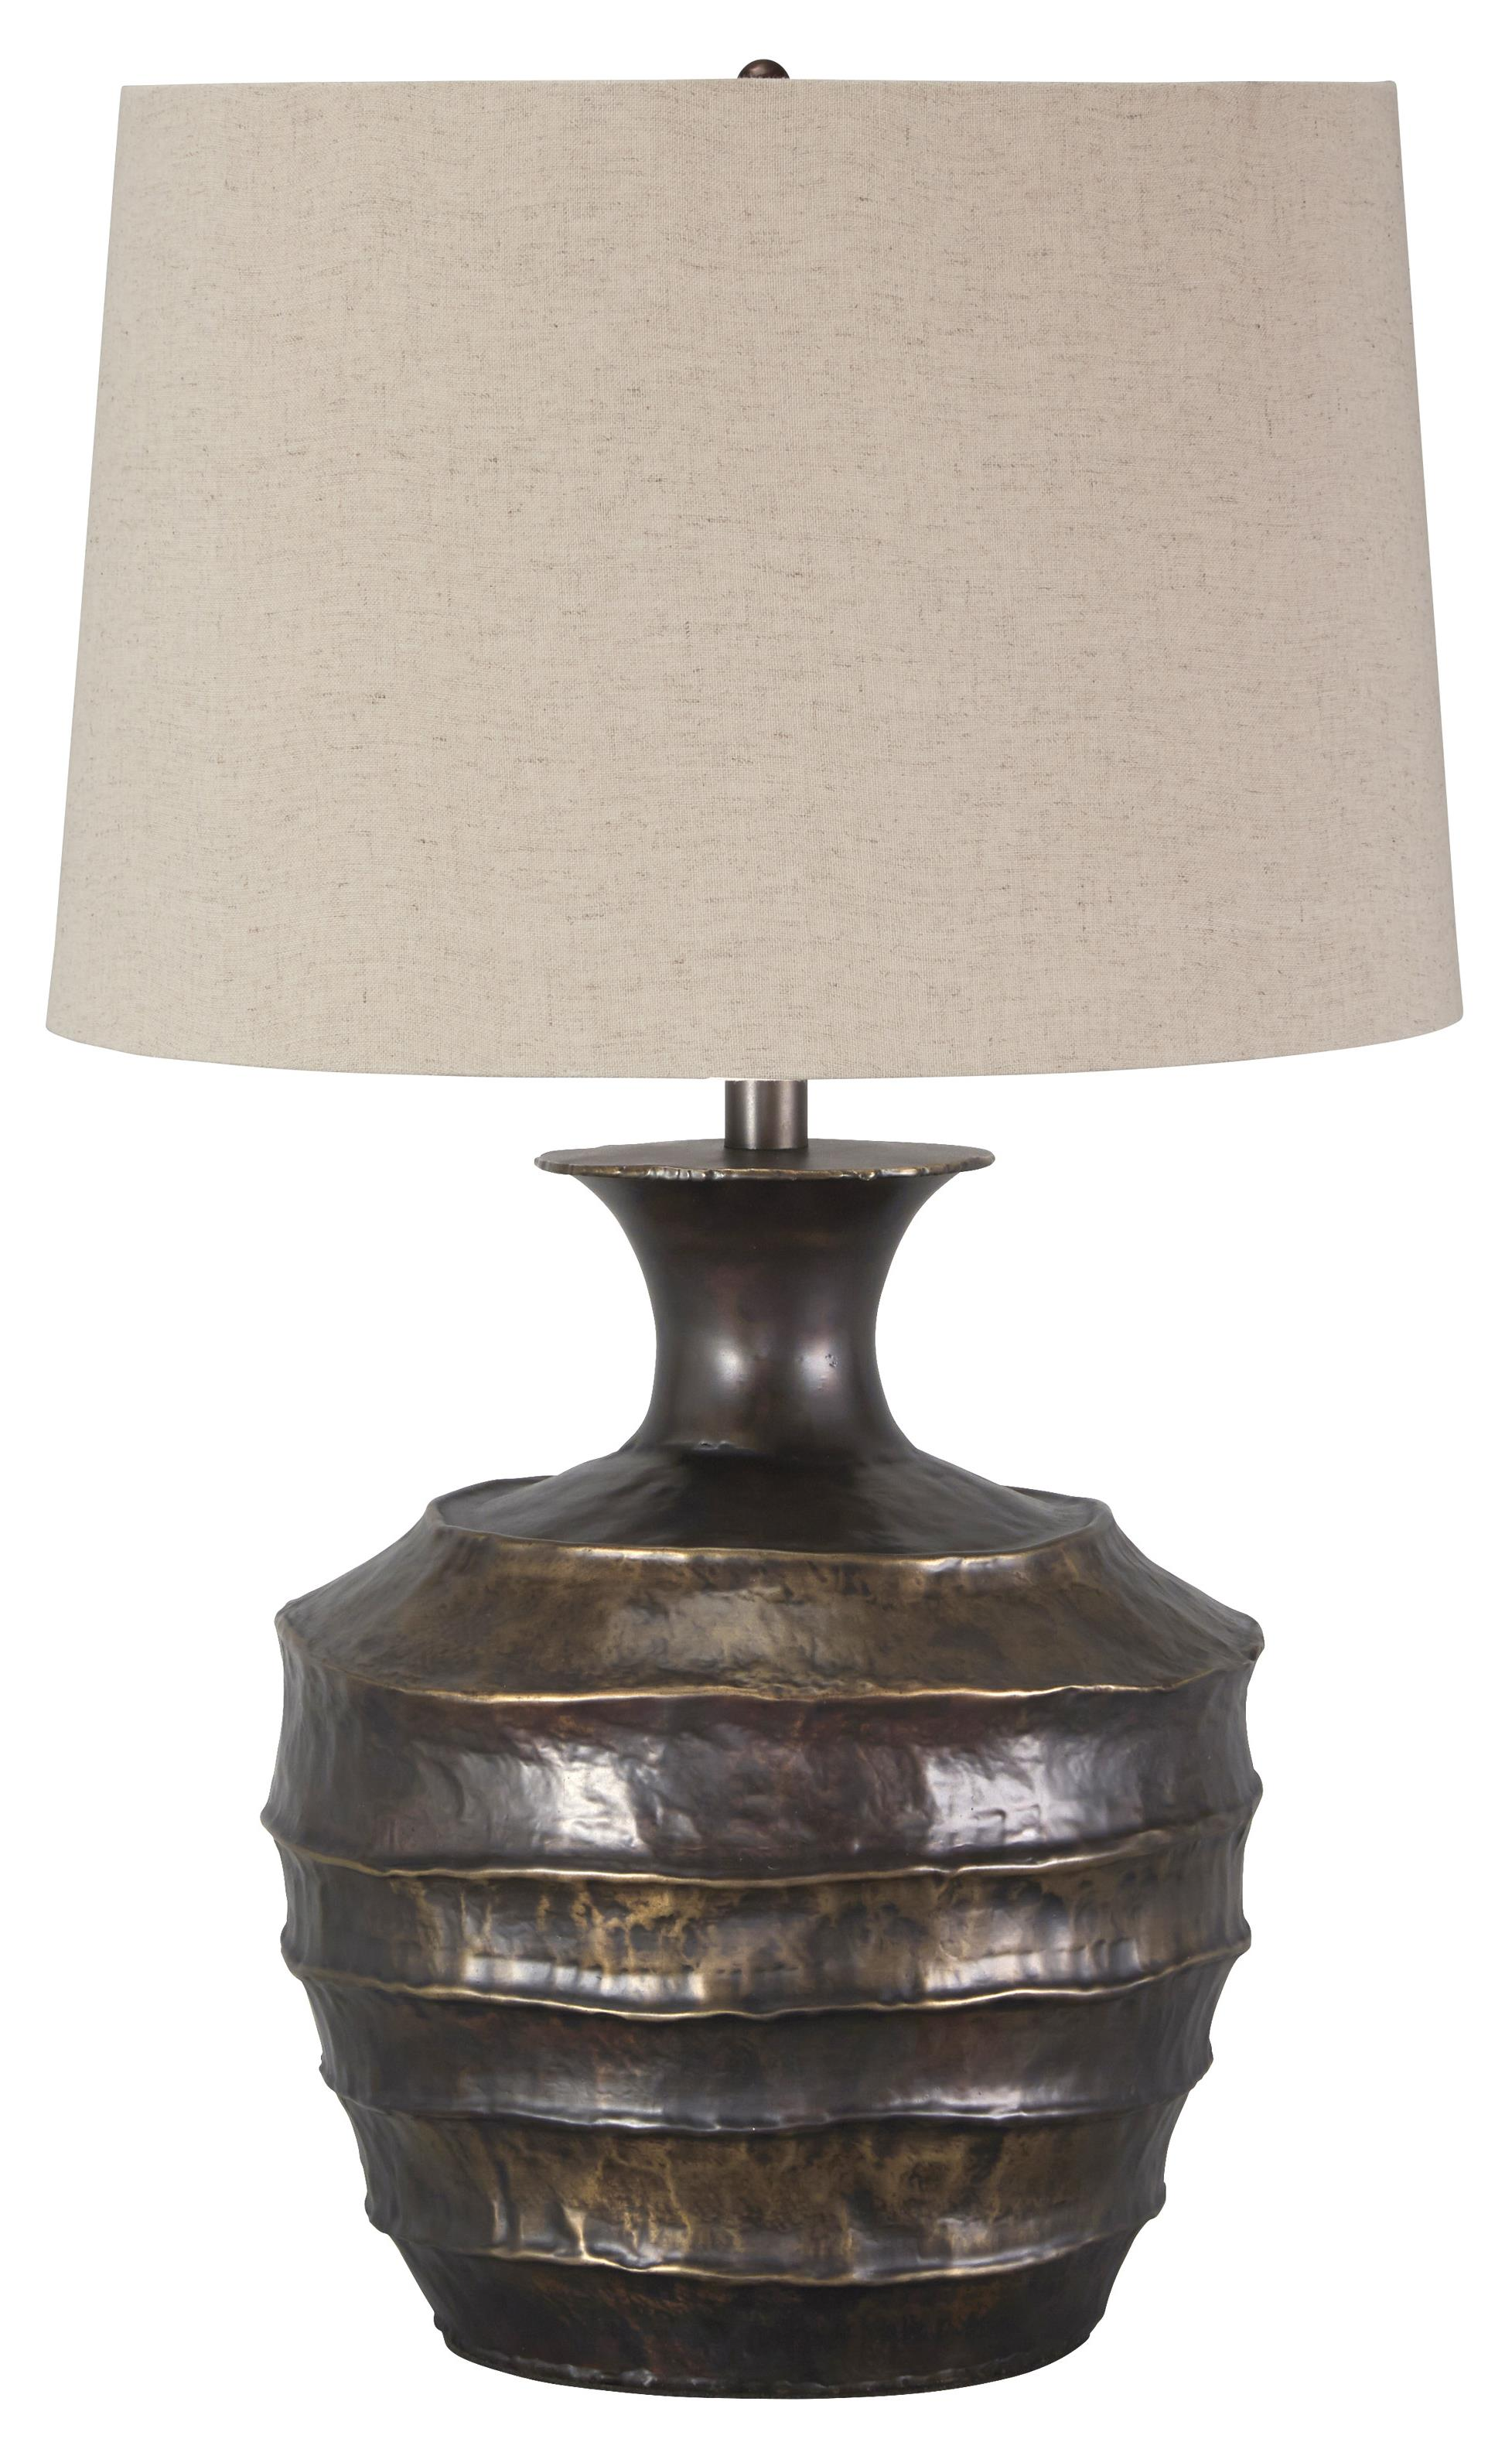 Signature Design by Ashley Lamps - Vintage Style Kymani Metal Table Lamp - Item Number: L207004